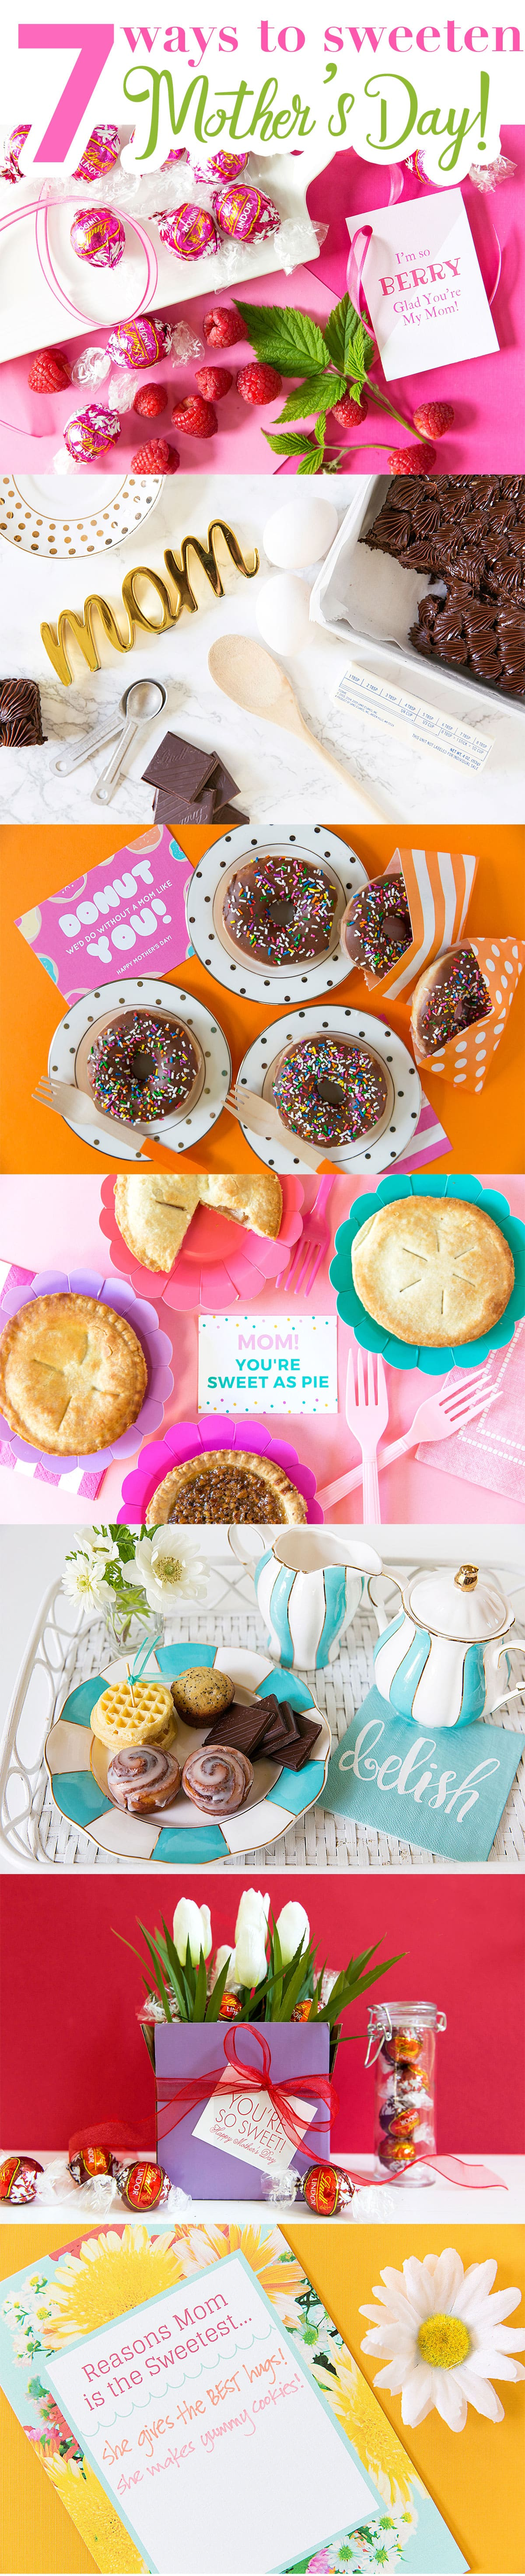 7 Ways to Sweeten Mother's Day! Pizzazzerie.com